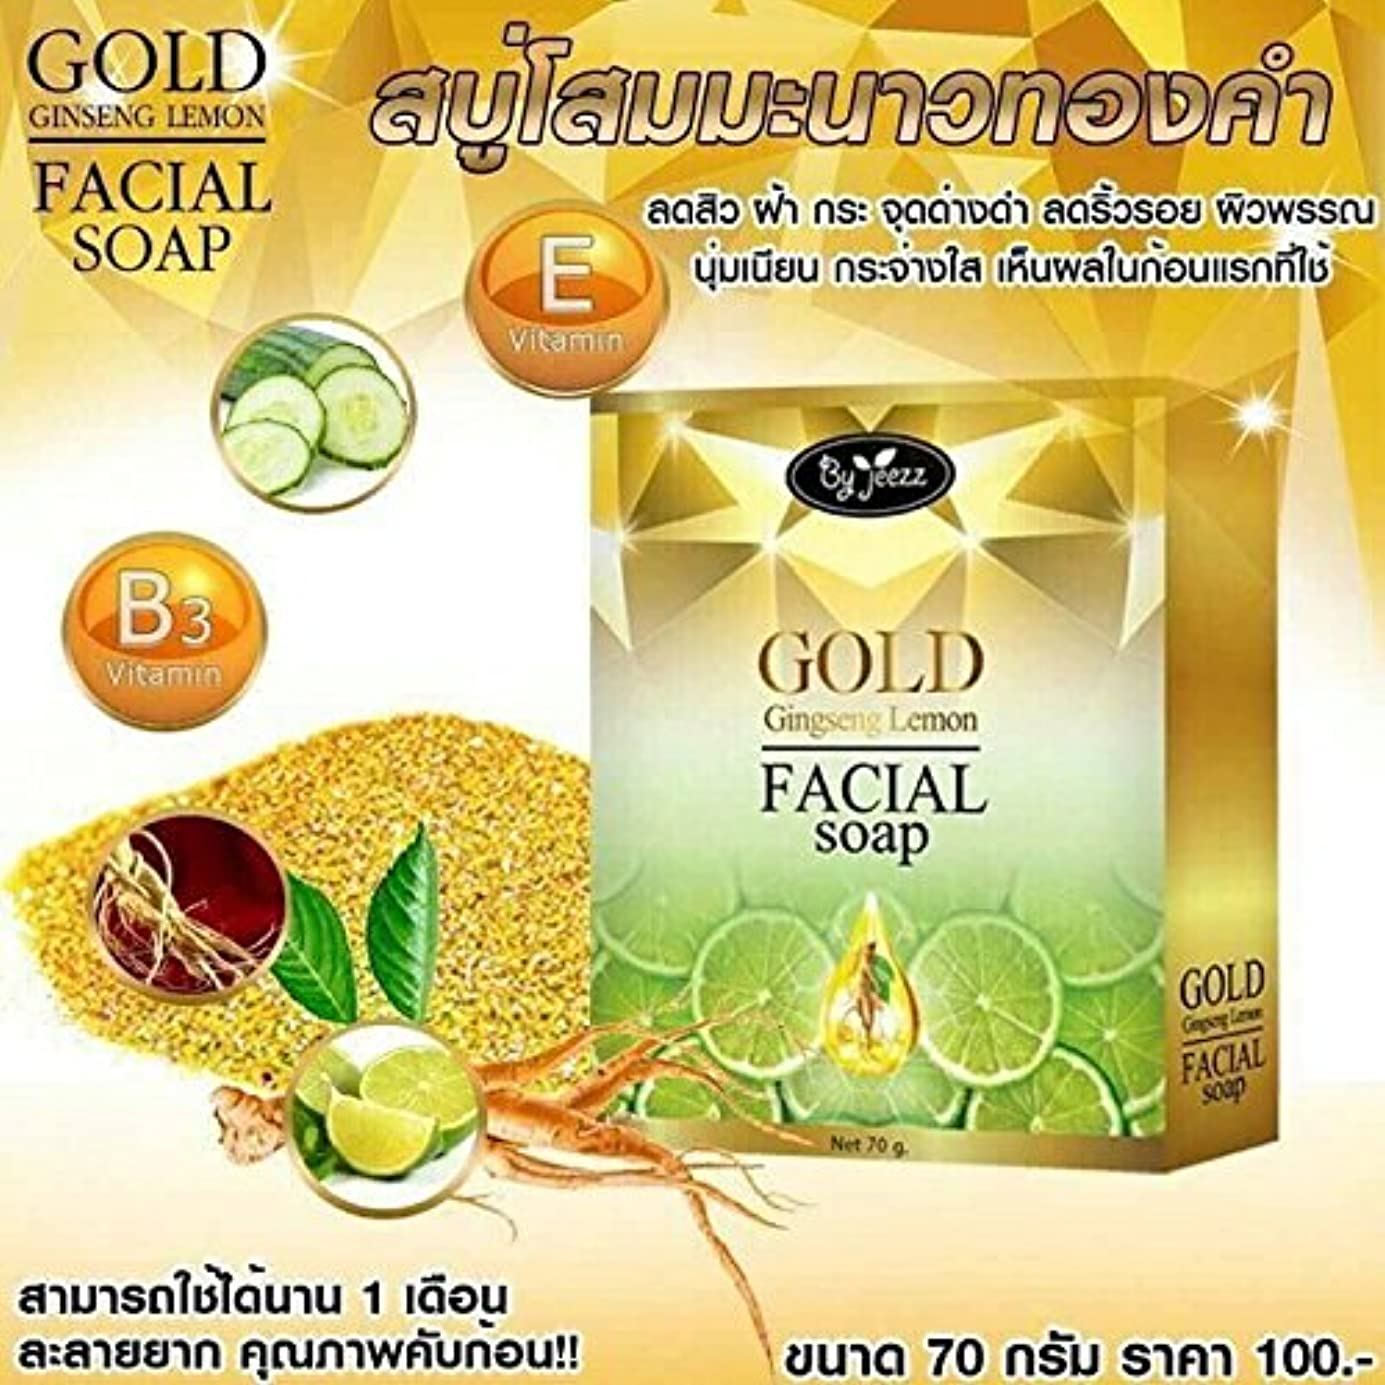 文法批判的陸軍1 X Natural Herbal Whitening Soap. Ginseng Lemon Soap (Gold Ginseng Lemon Facial Soap by jeezz) 70 g. Free shipping